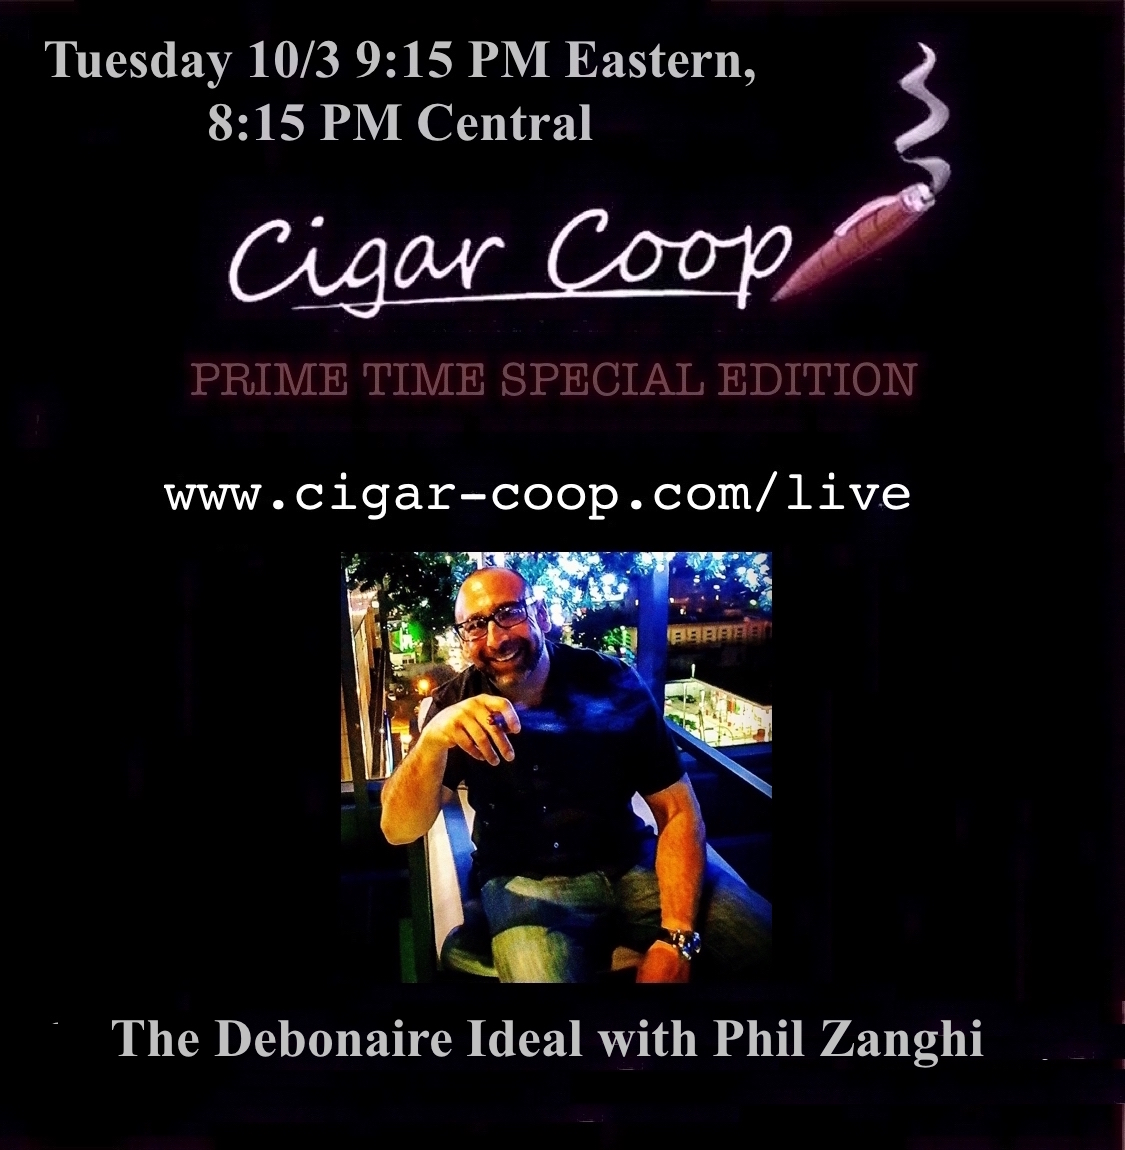 Announcement: Prime Time Special Edition #13: Tuesday 10/3 9:15 Eastern, 8:15 Central